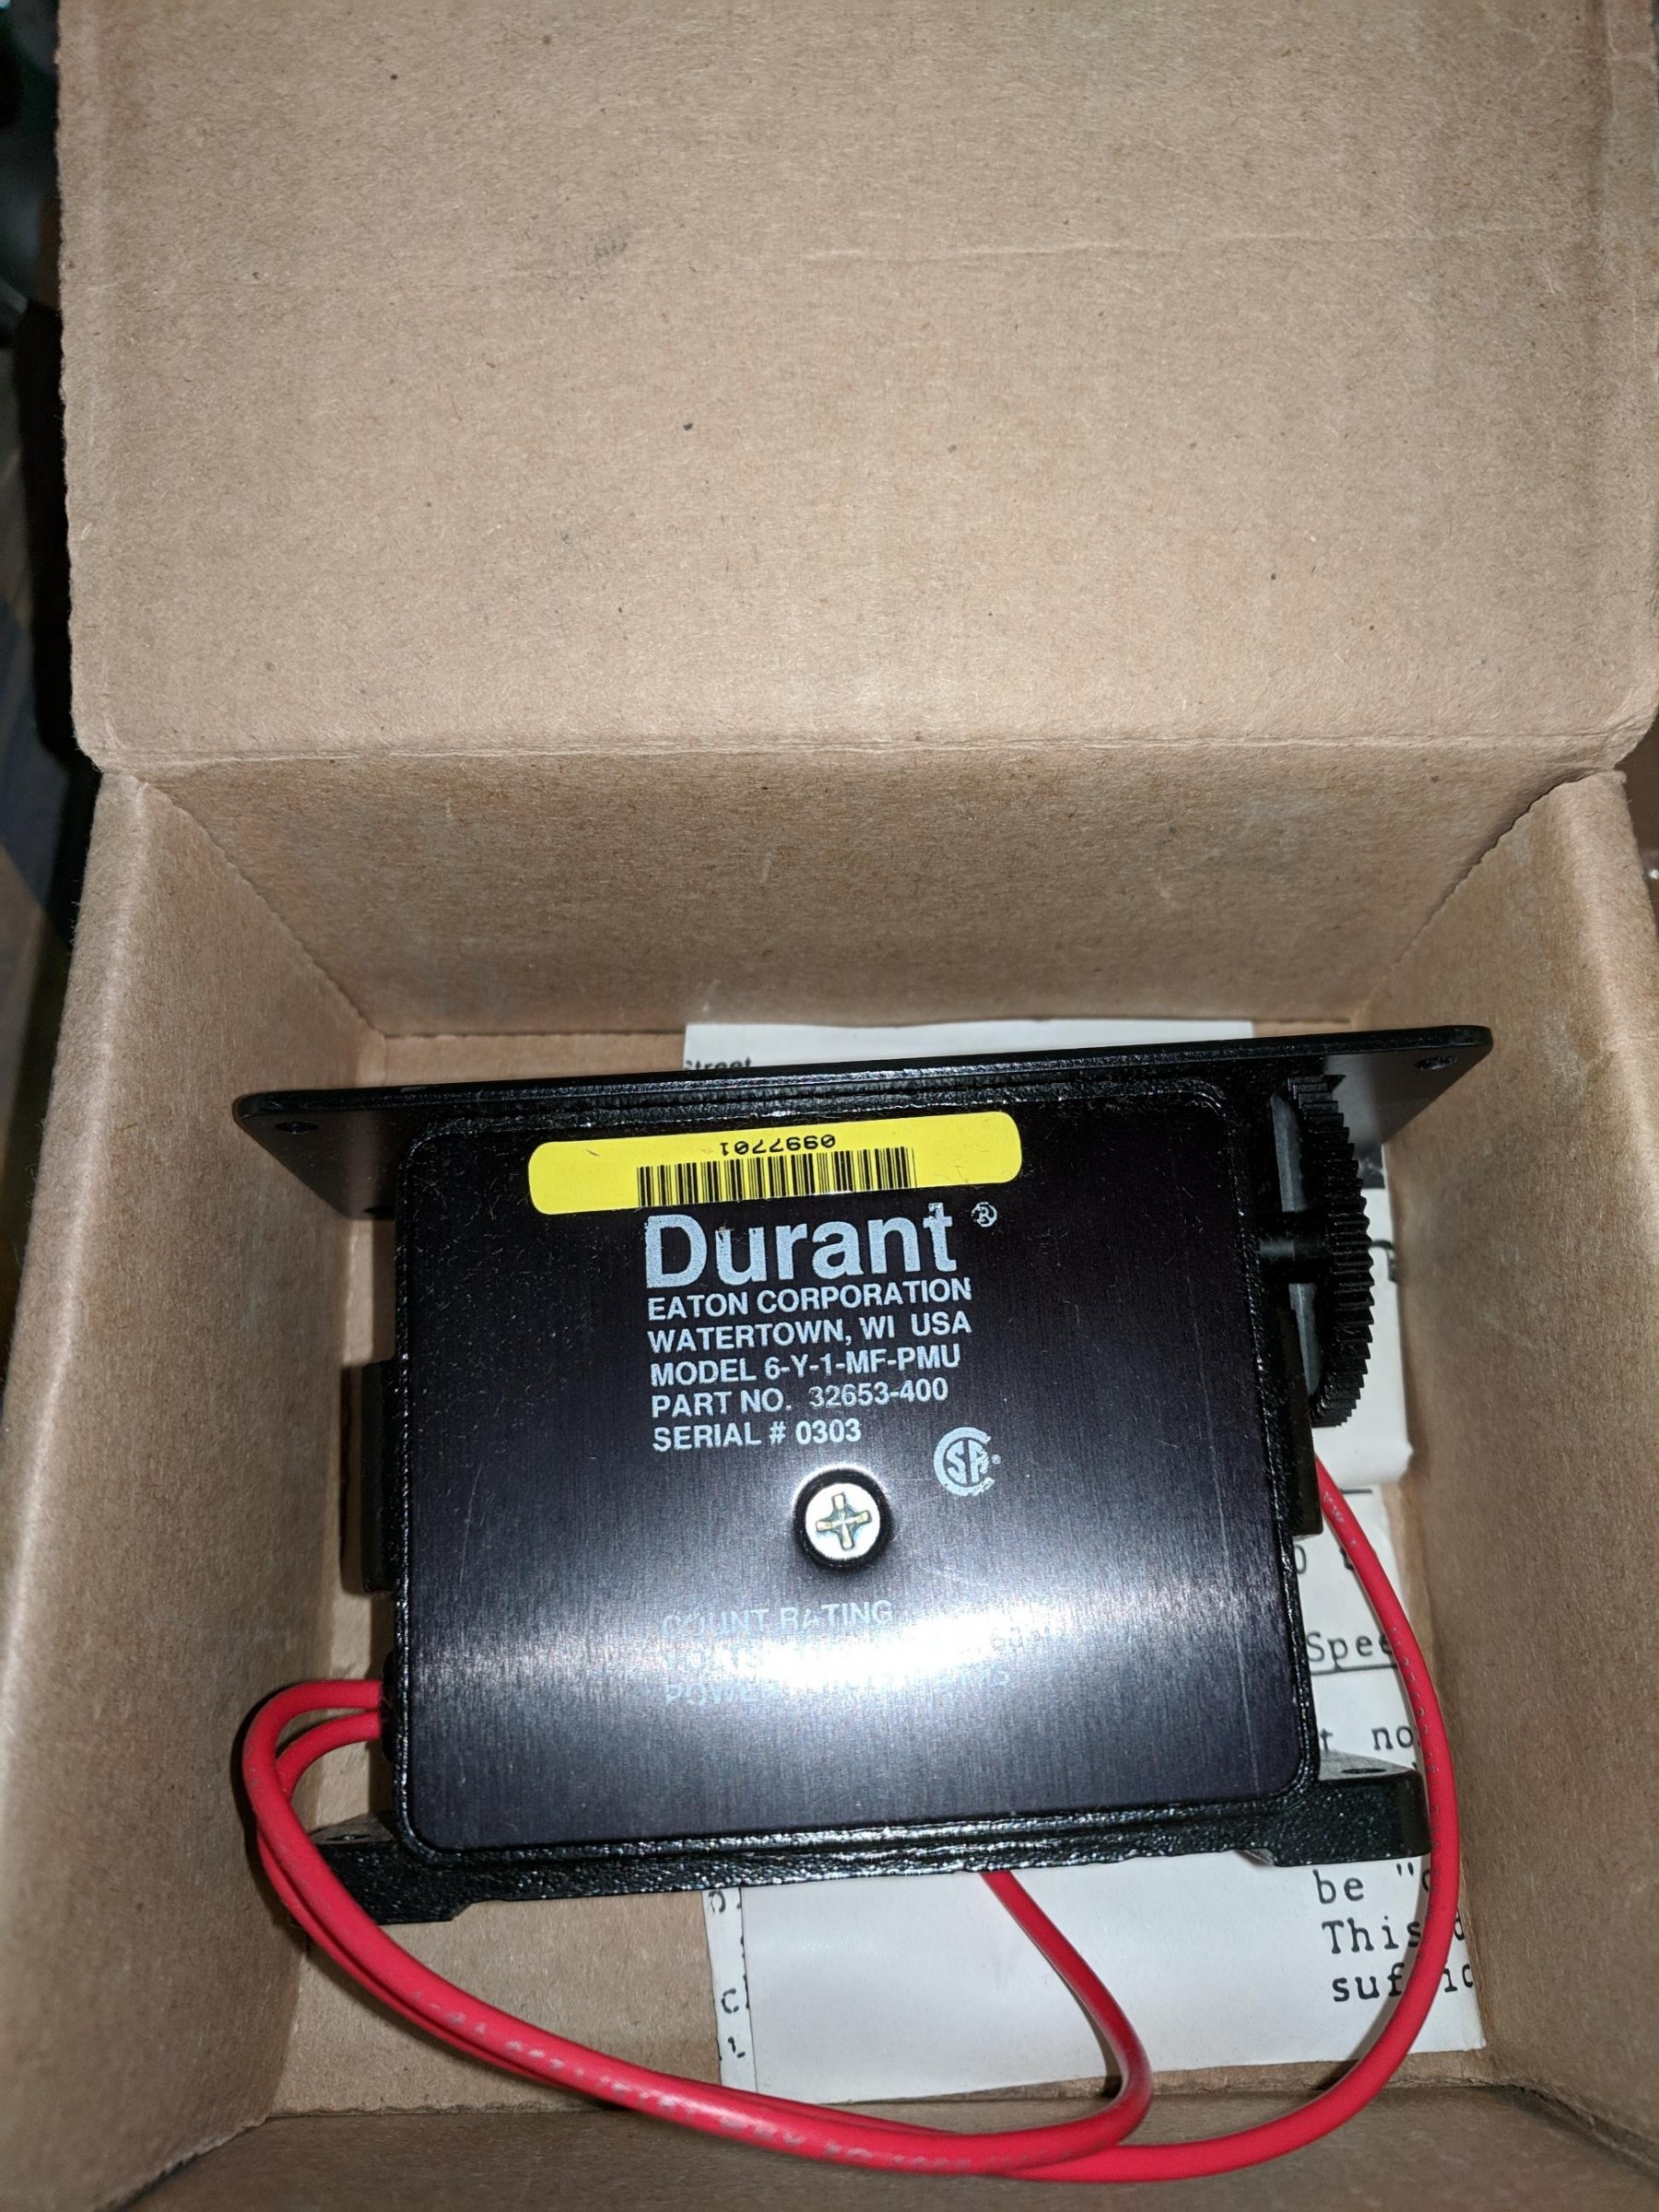 Durant 6-Y-1-MF-PMU 120VAC Panel Mount 6-Digit Counter New in Box